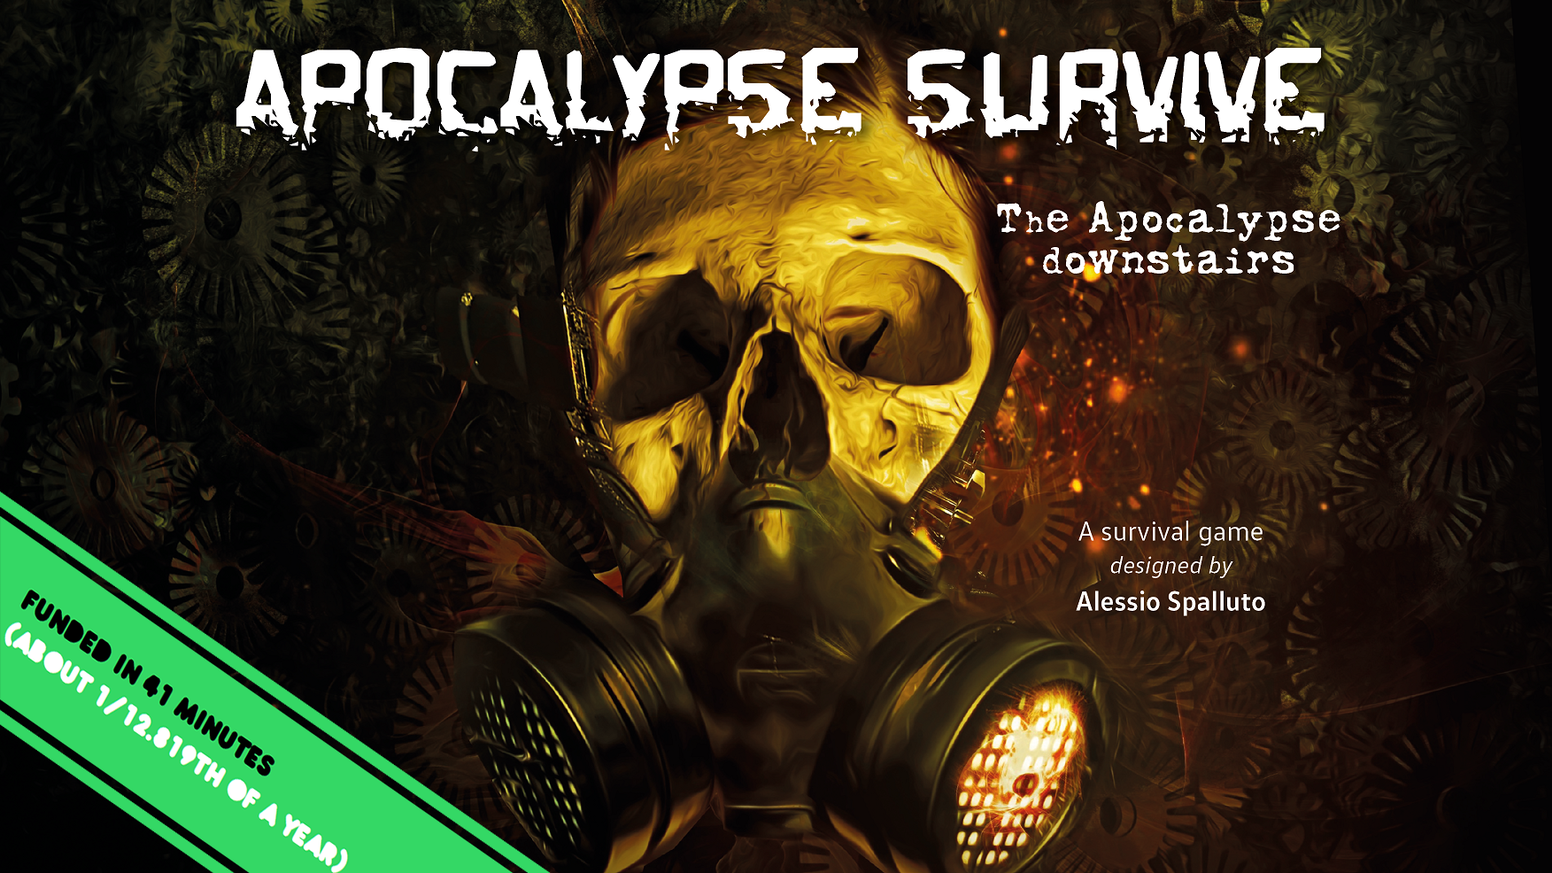 A Zine RPG were you will play yourself in the worst apocalyptic scenario you can imagine.